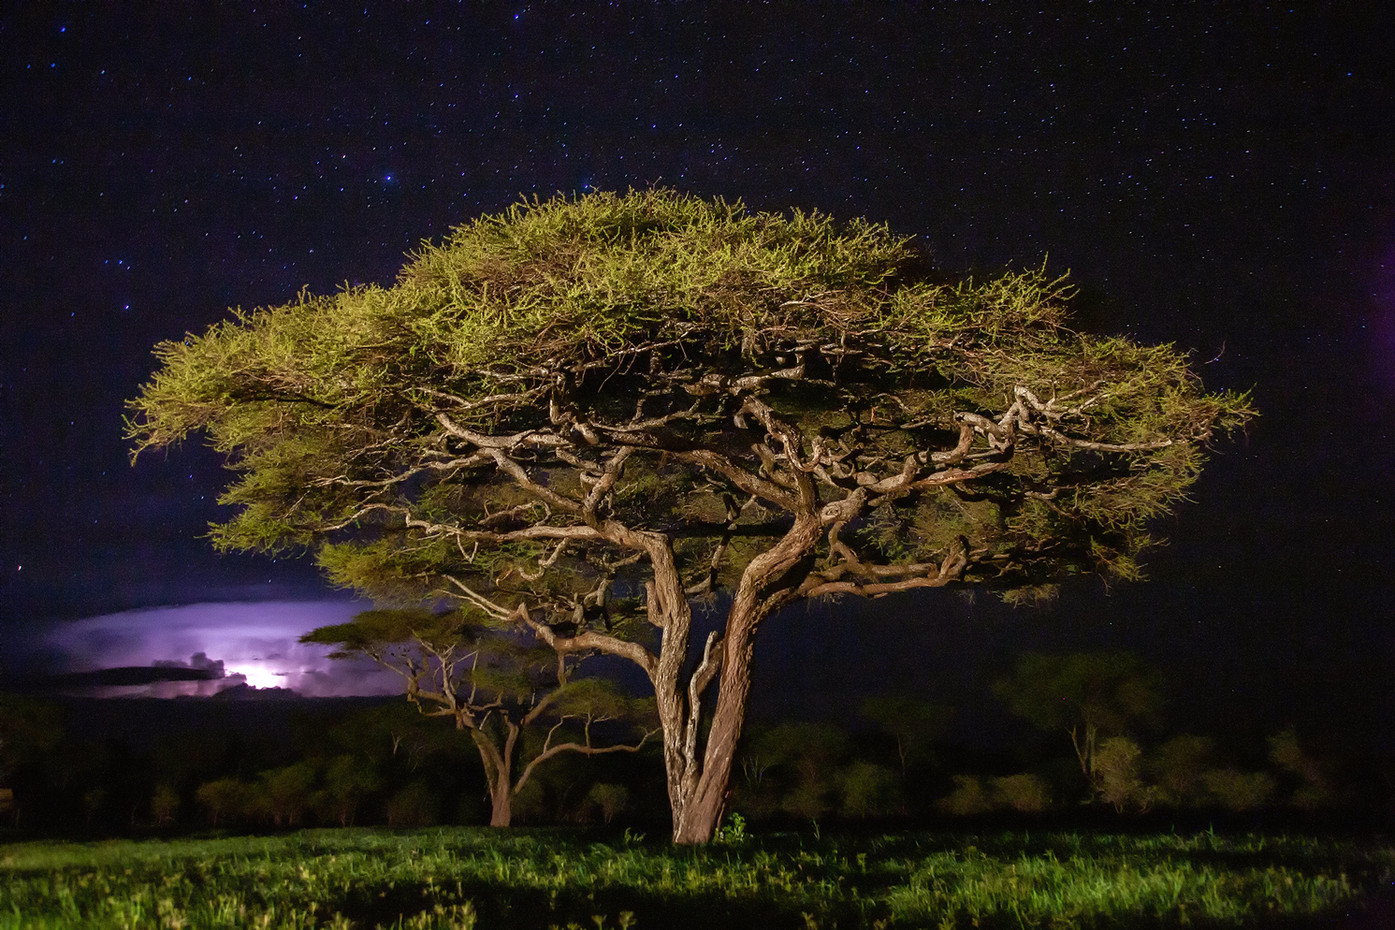 Thunderstorm at night over the Serengeti NP, Tanzania